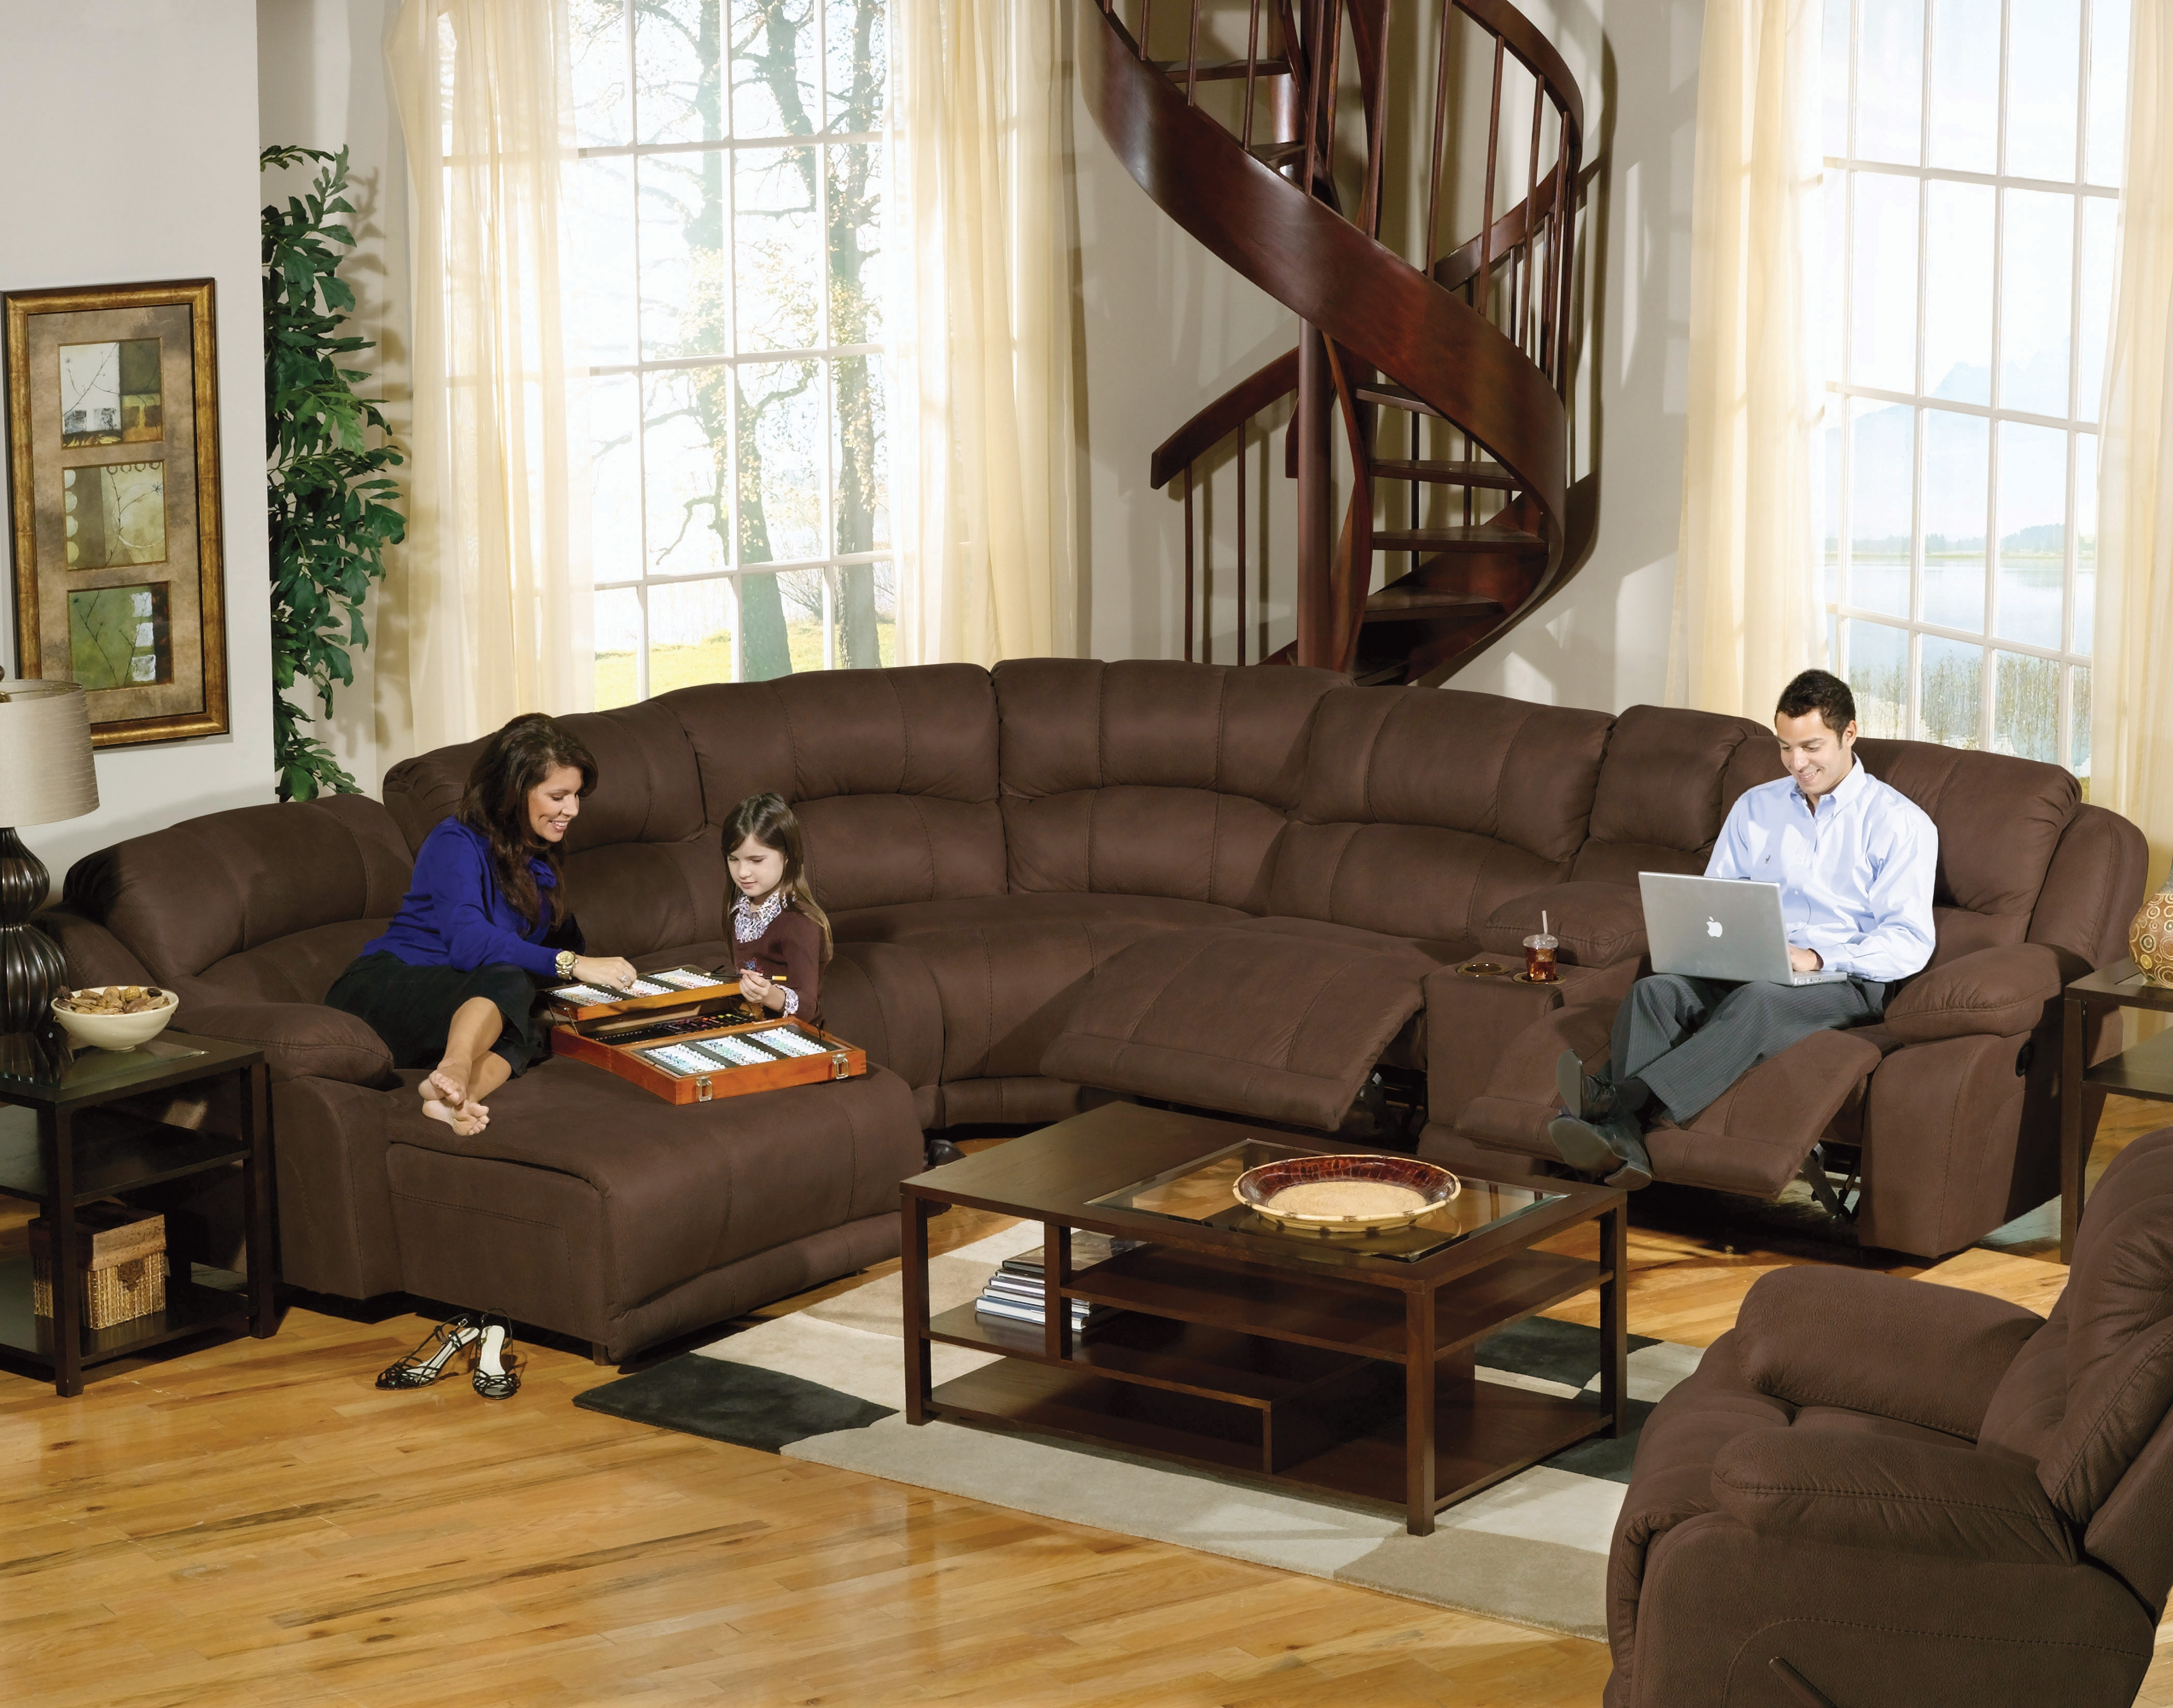 Large Comfortable Sectional Sofas For 2018 Extra Long Reclining Sofa Extra Large Sectional Sofas Oversized (View 4 of 15)